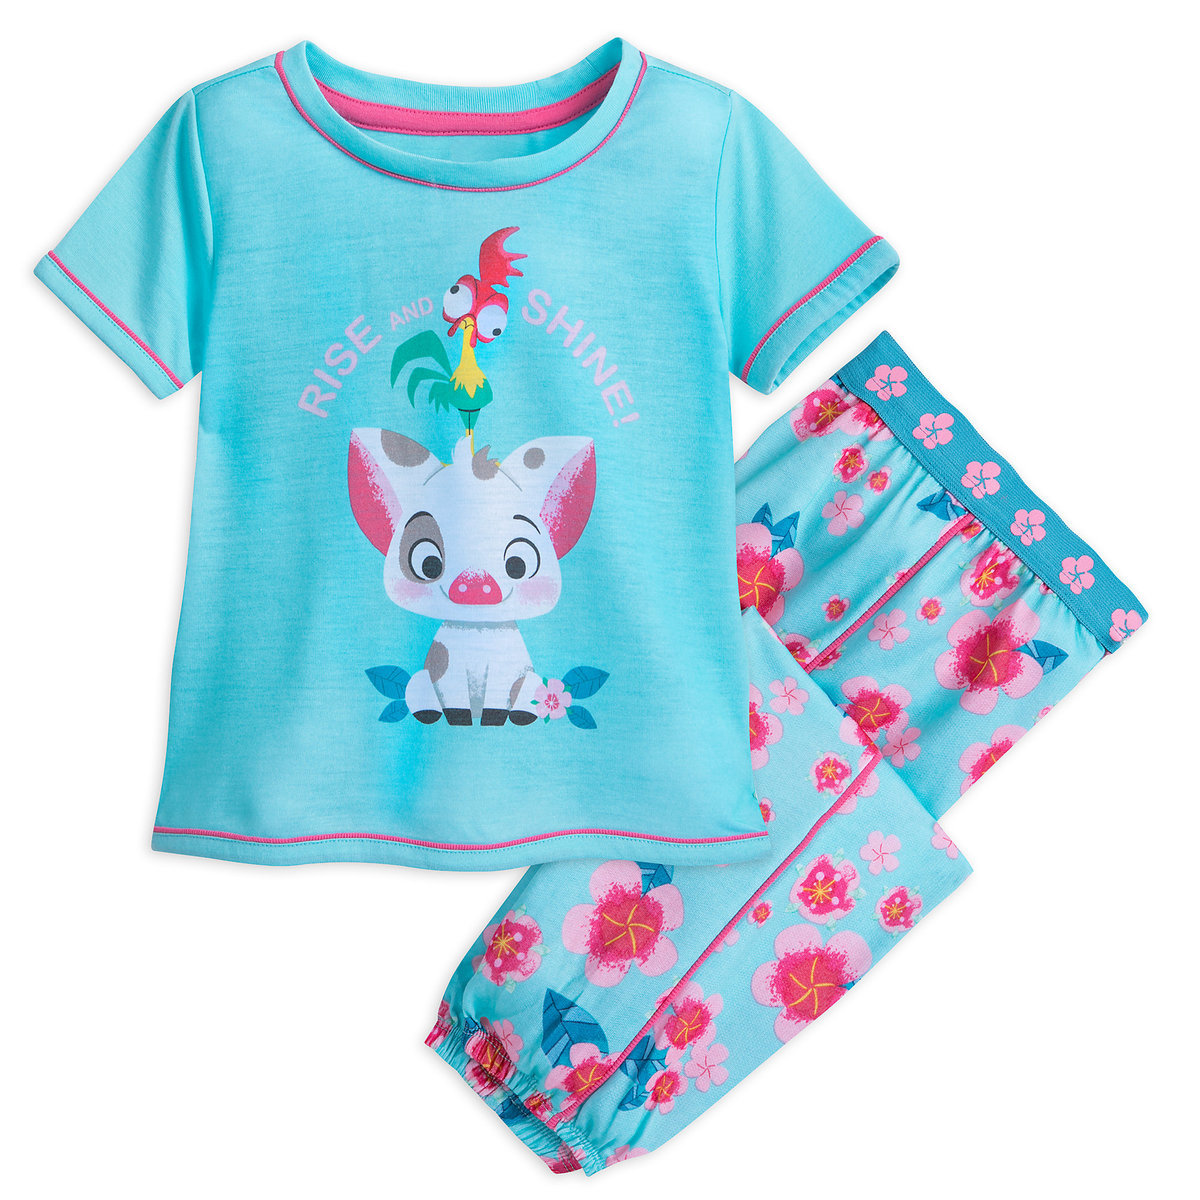 Pua and Hei Hei PJ Set for Girls - Moana | shopDisney